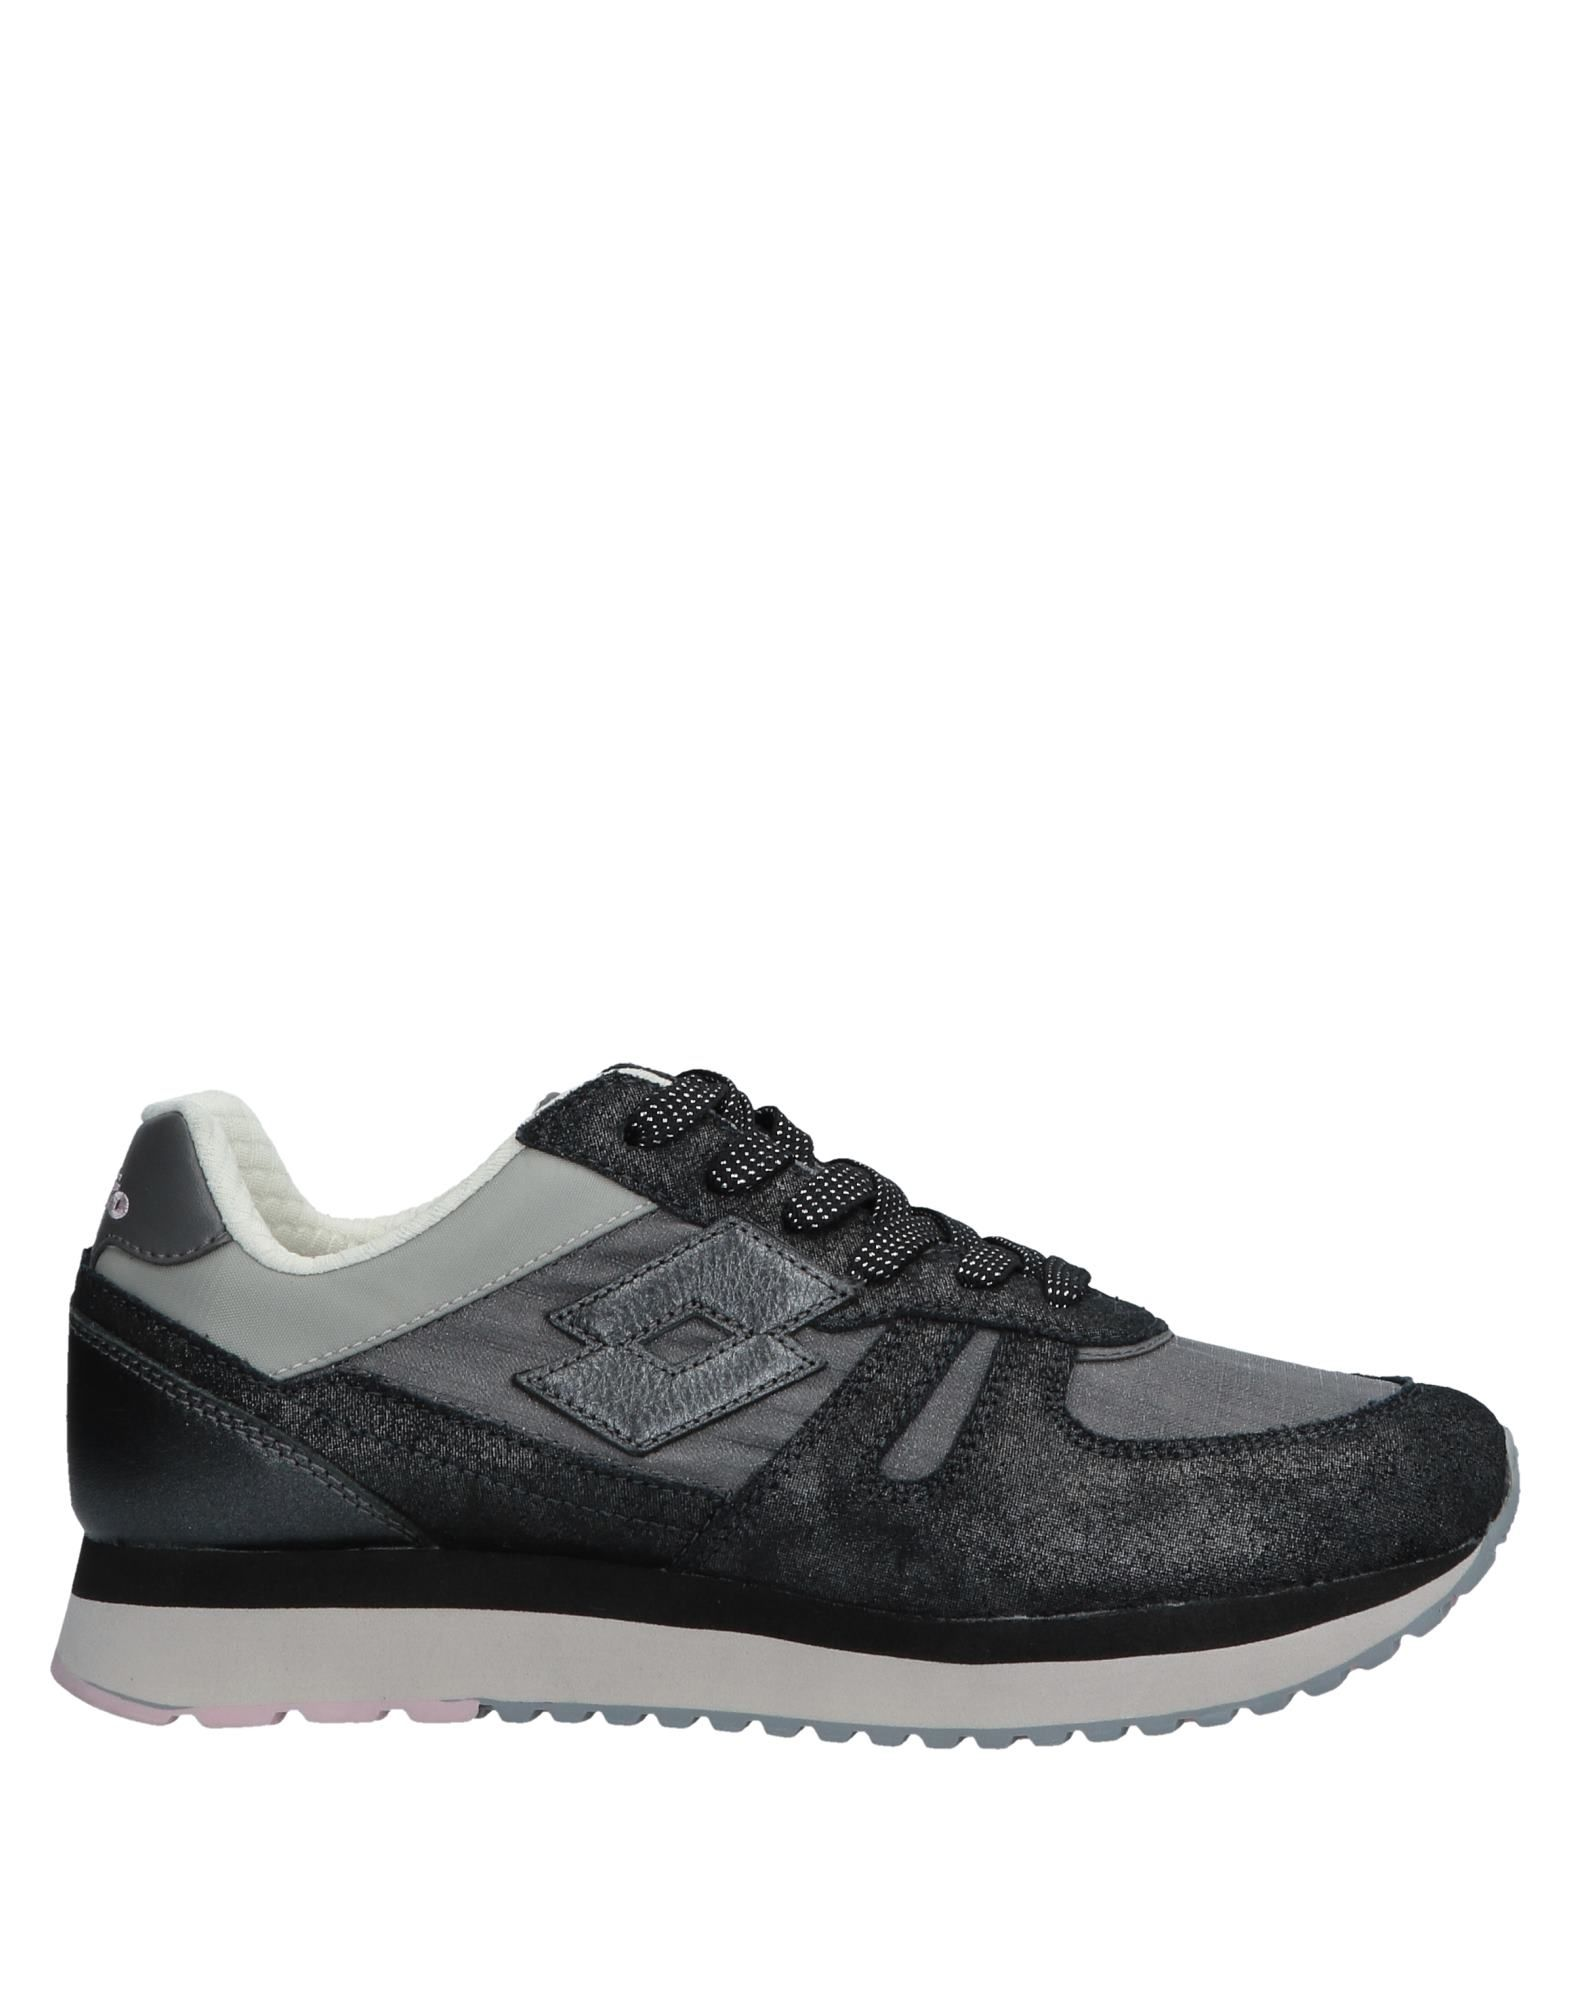 Lotto Leggenda Sneakers - Women Lotto  Leggenda Sneakers online on  Lotto Canada - 11558751AT b23e59